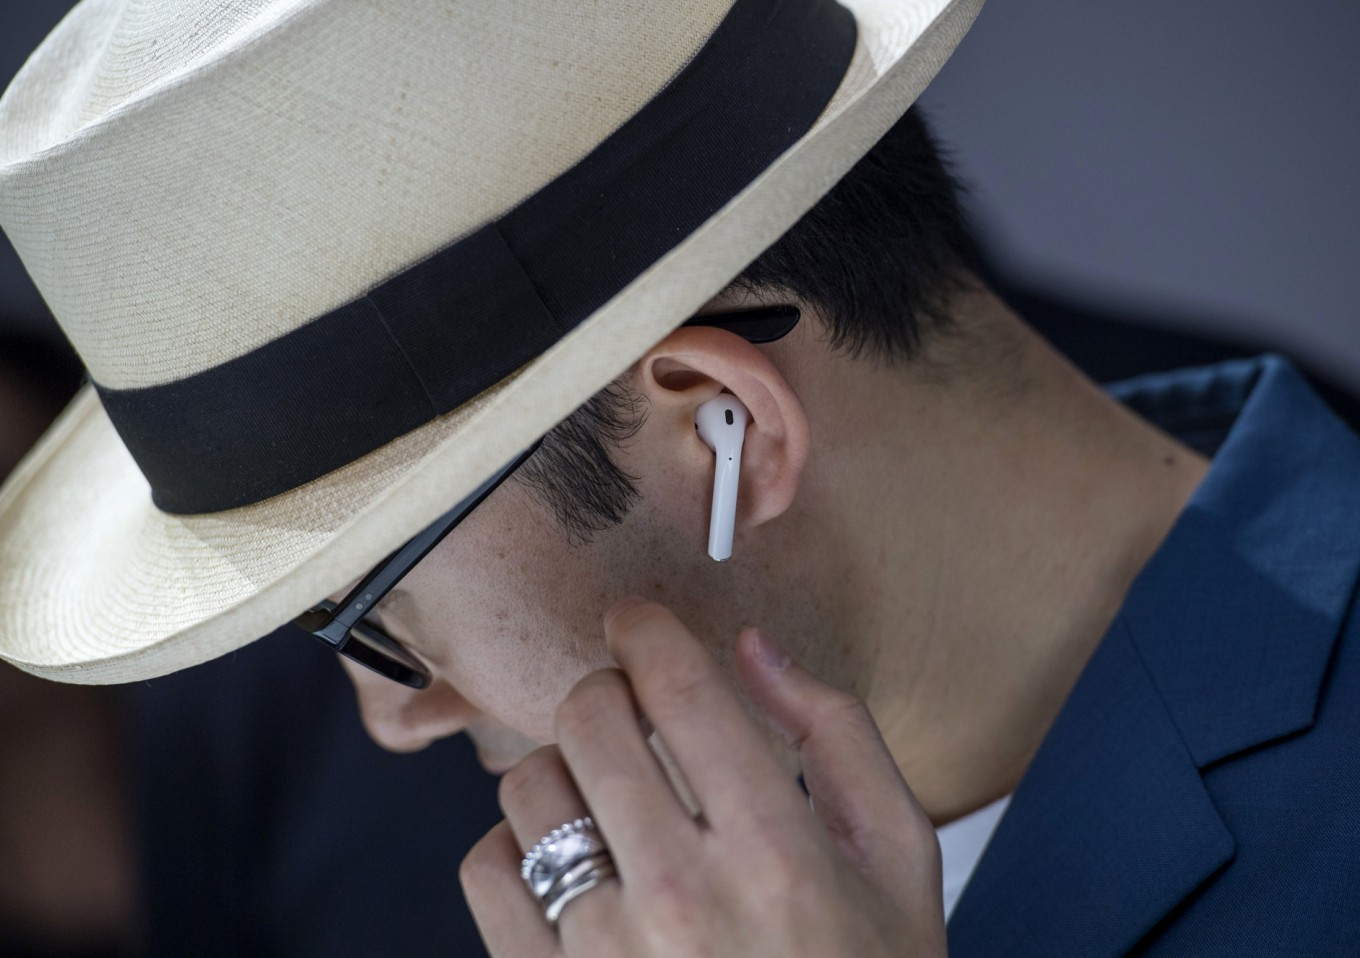 Apple plans upgrades to popular AirPods headphones